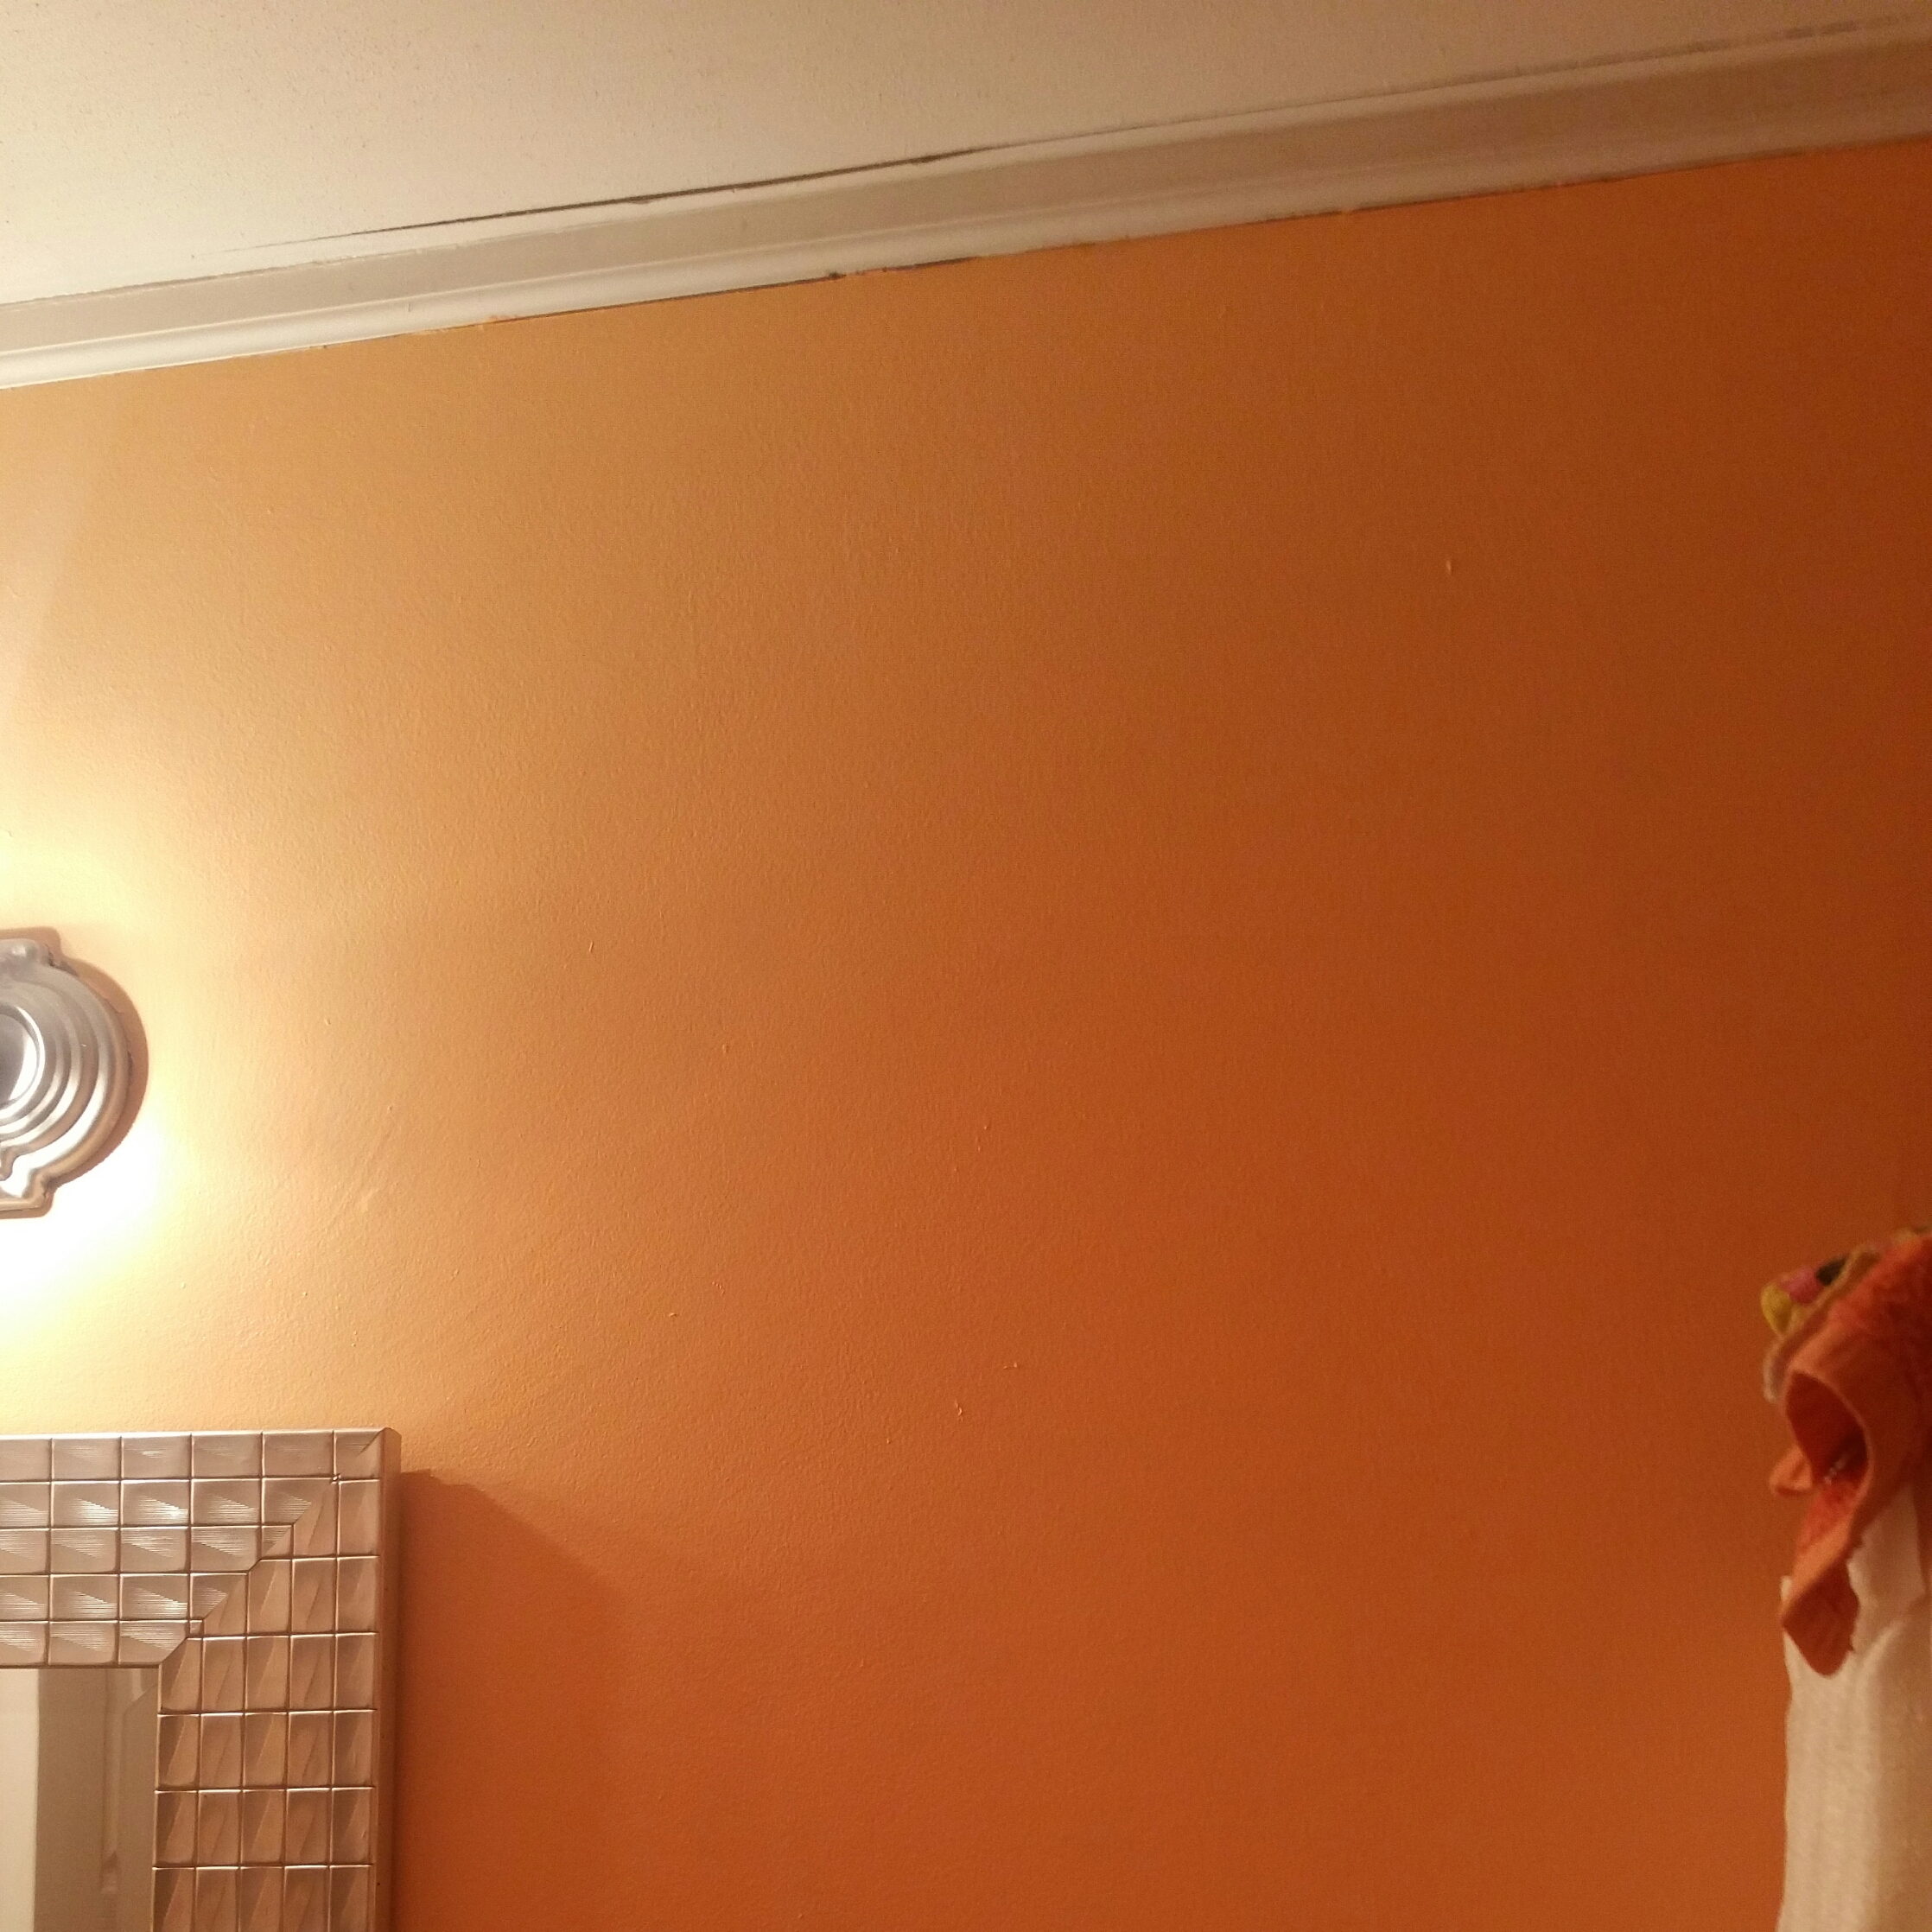 Crown Molding Ceiling In My Bathroom Is Cracked And Need